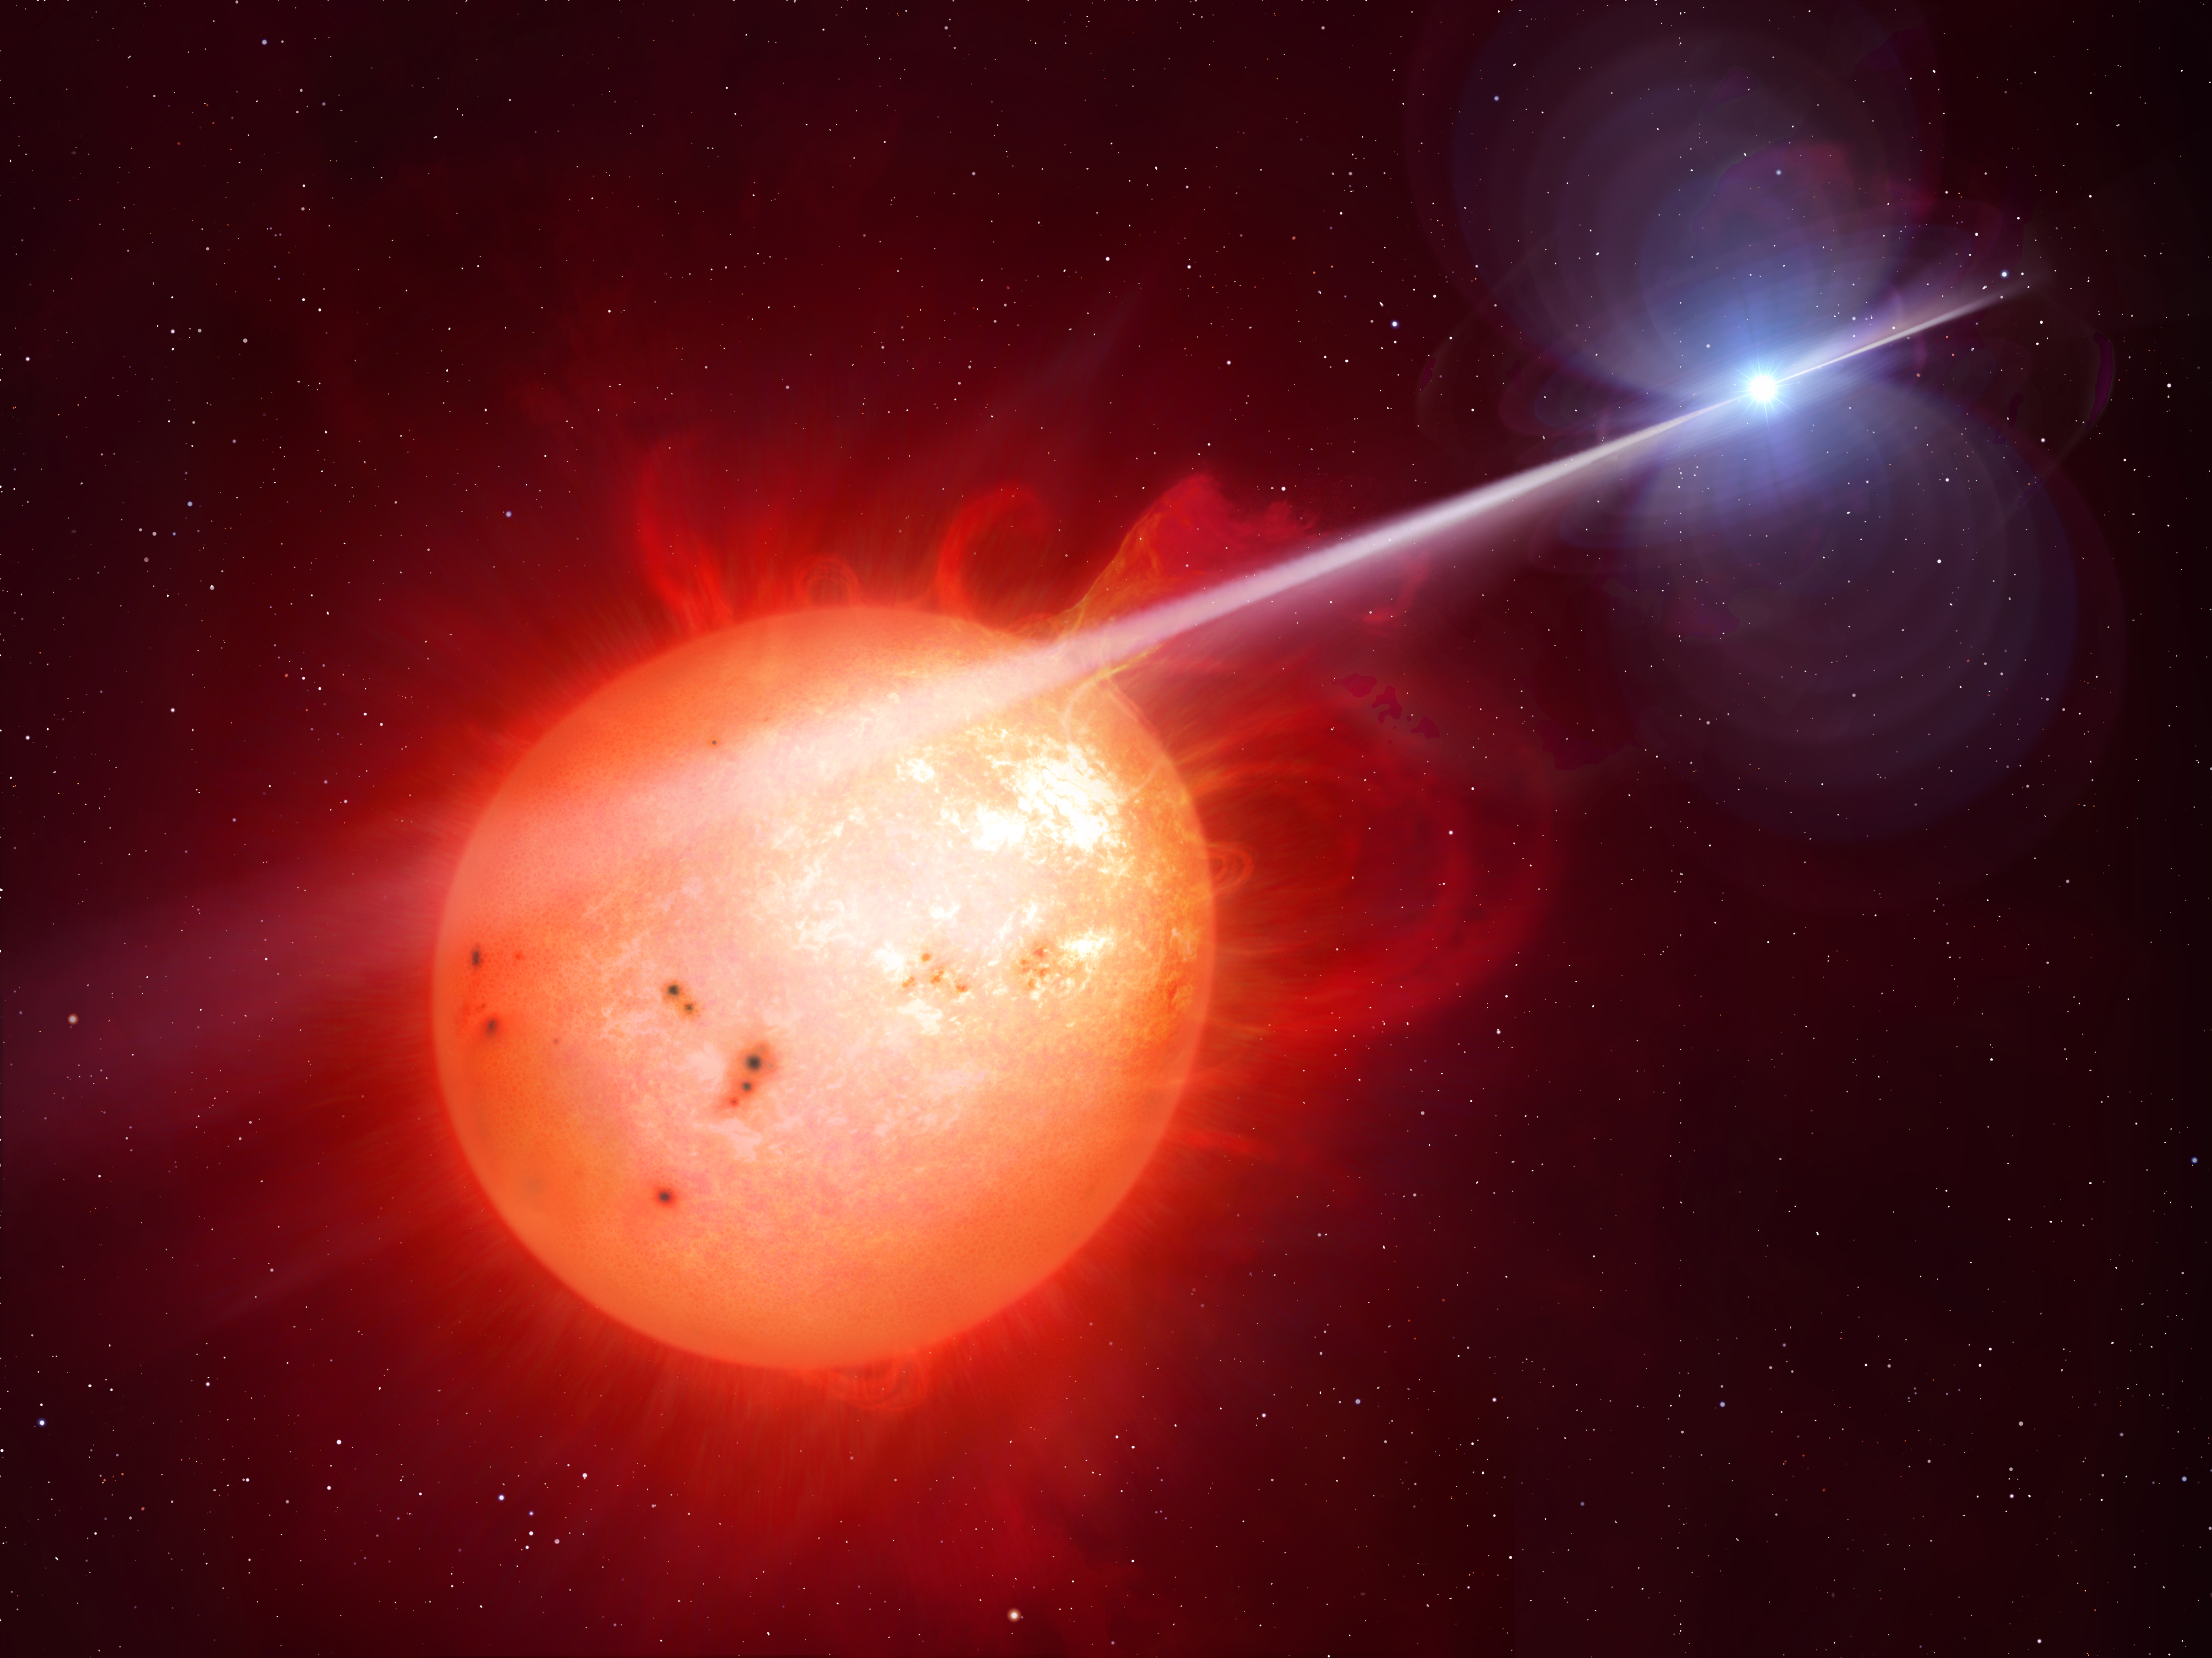 Newfound White Dwarf Pulsar Is 1st of Its Kind, Researchers Say